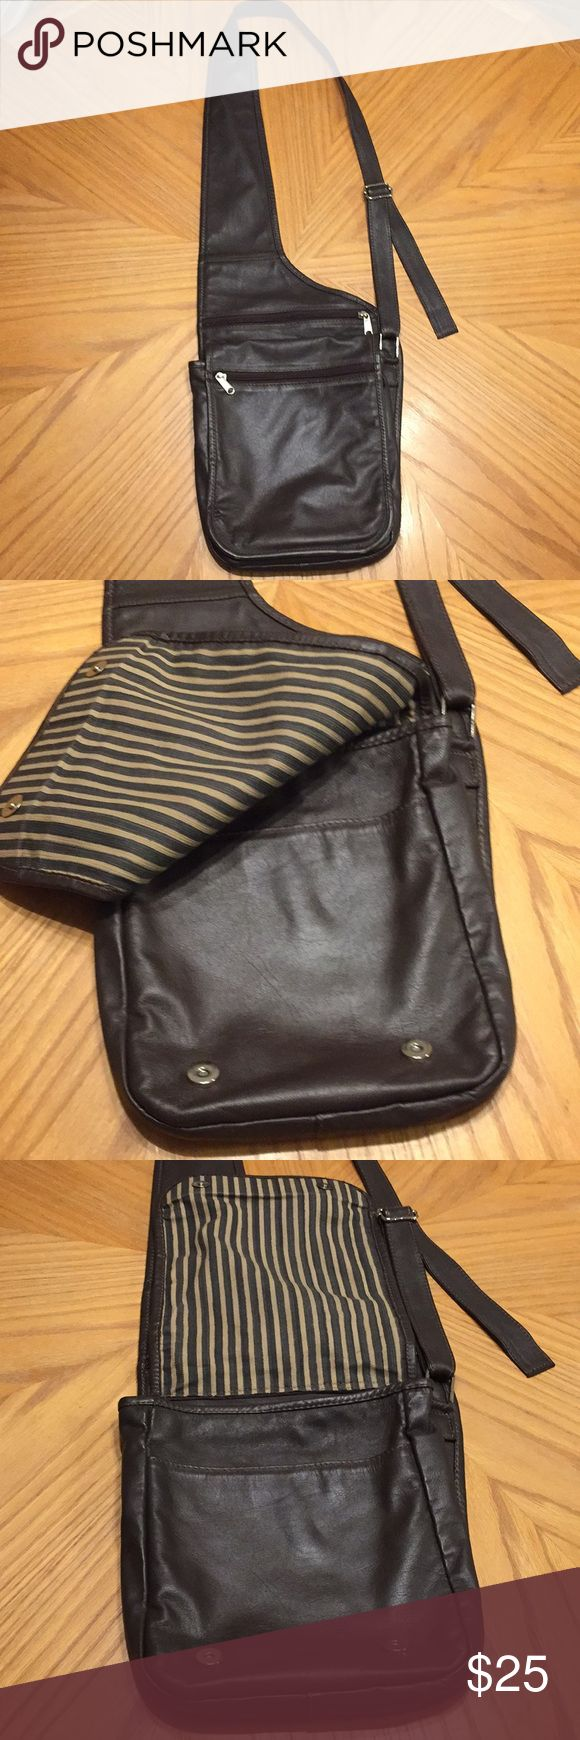 Crossbody Genuine dark brown leather quality crossbody. Purchased in Colombia South America. Has 5 openings for storage and long adjustable strap.   GUC has 2 minor blemishes as seen in pic and a hardly noticeable pen mark Bags Crossbody Bags